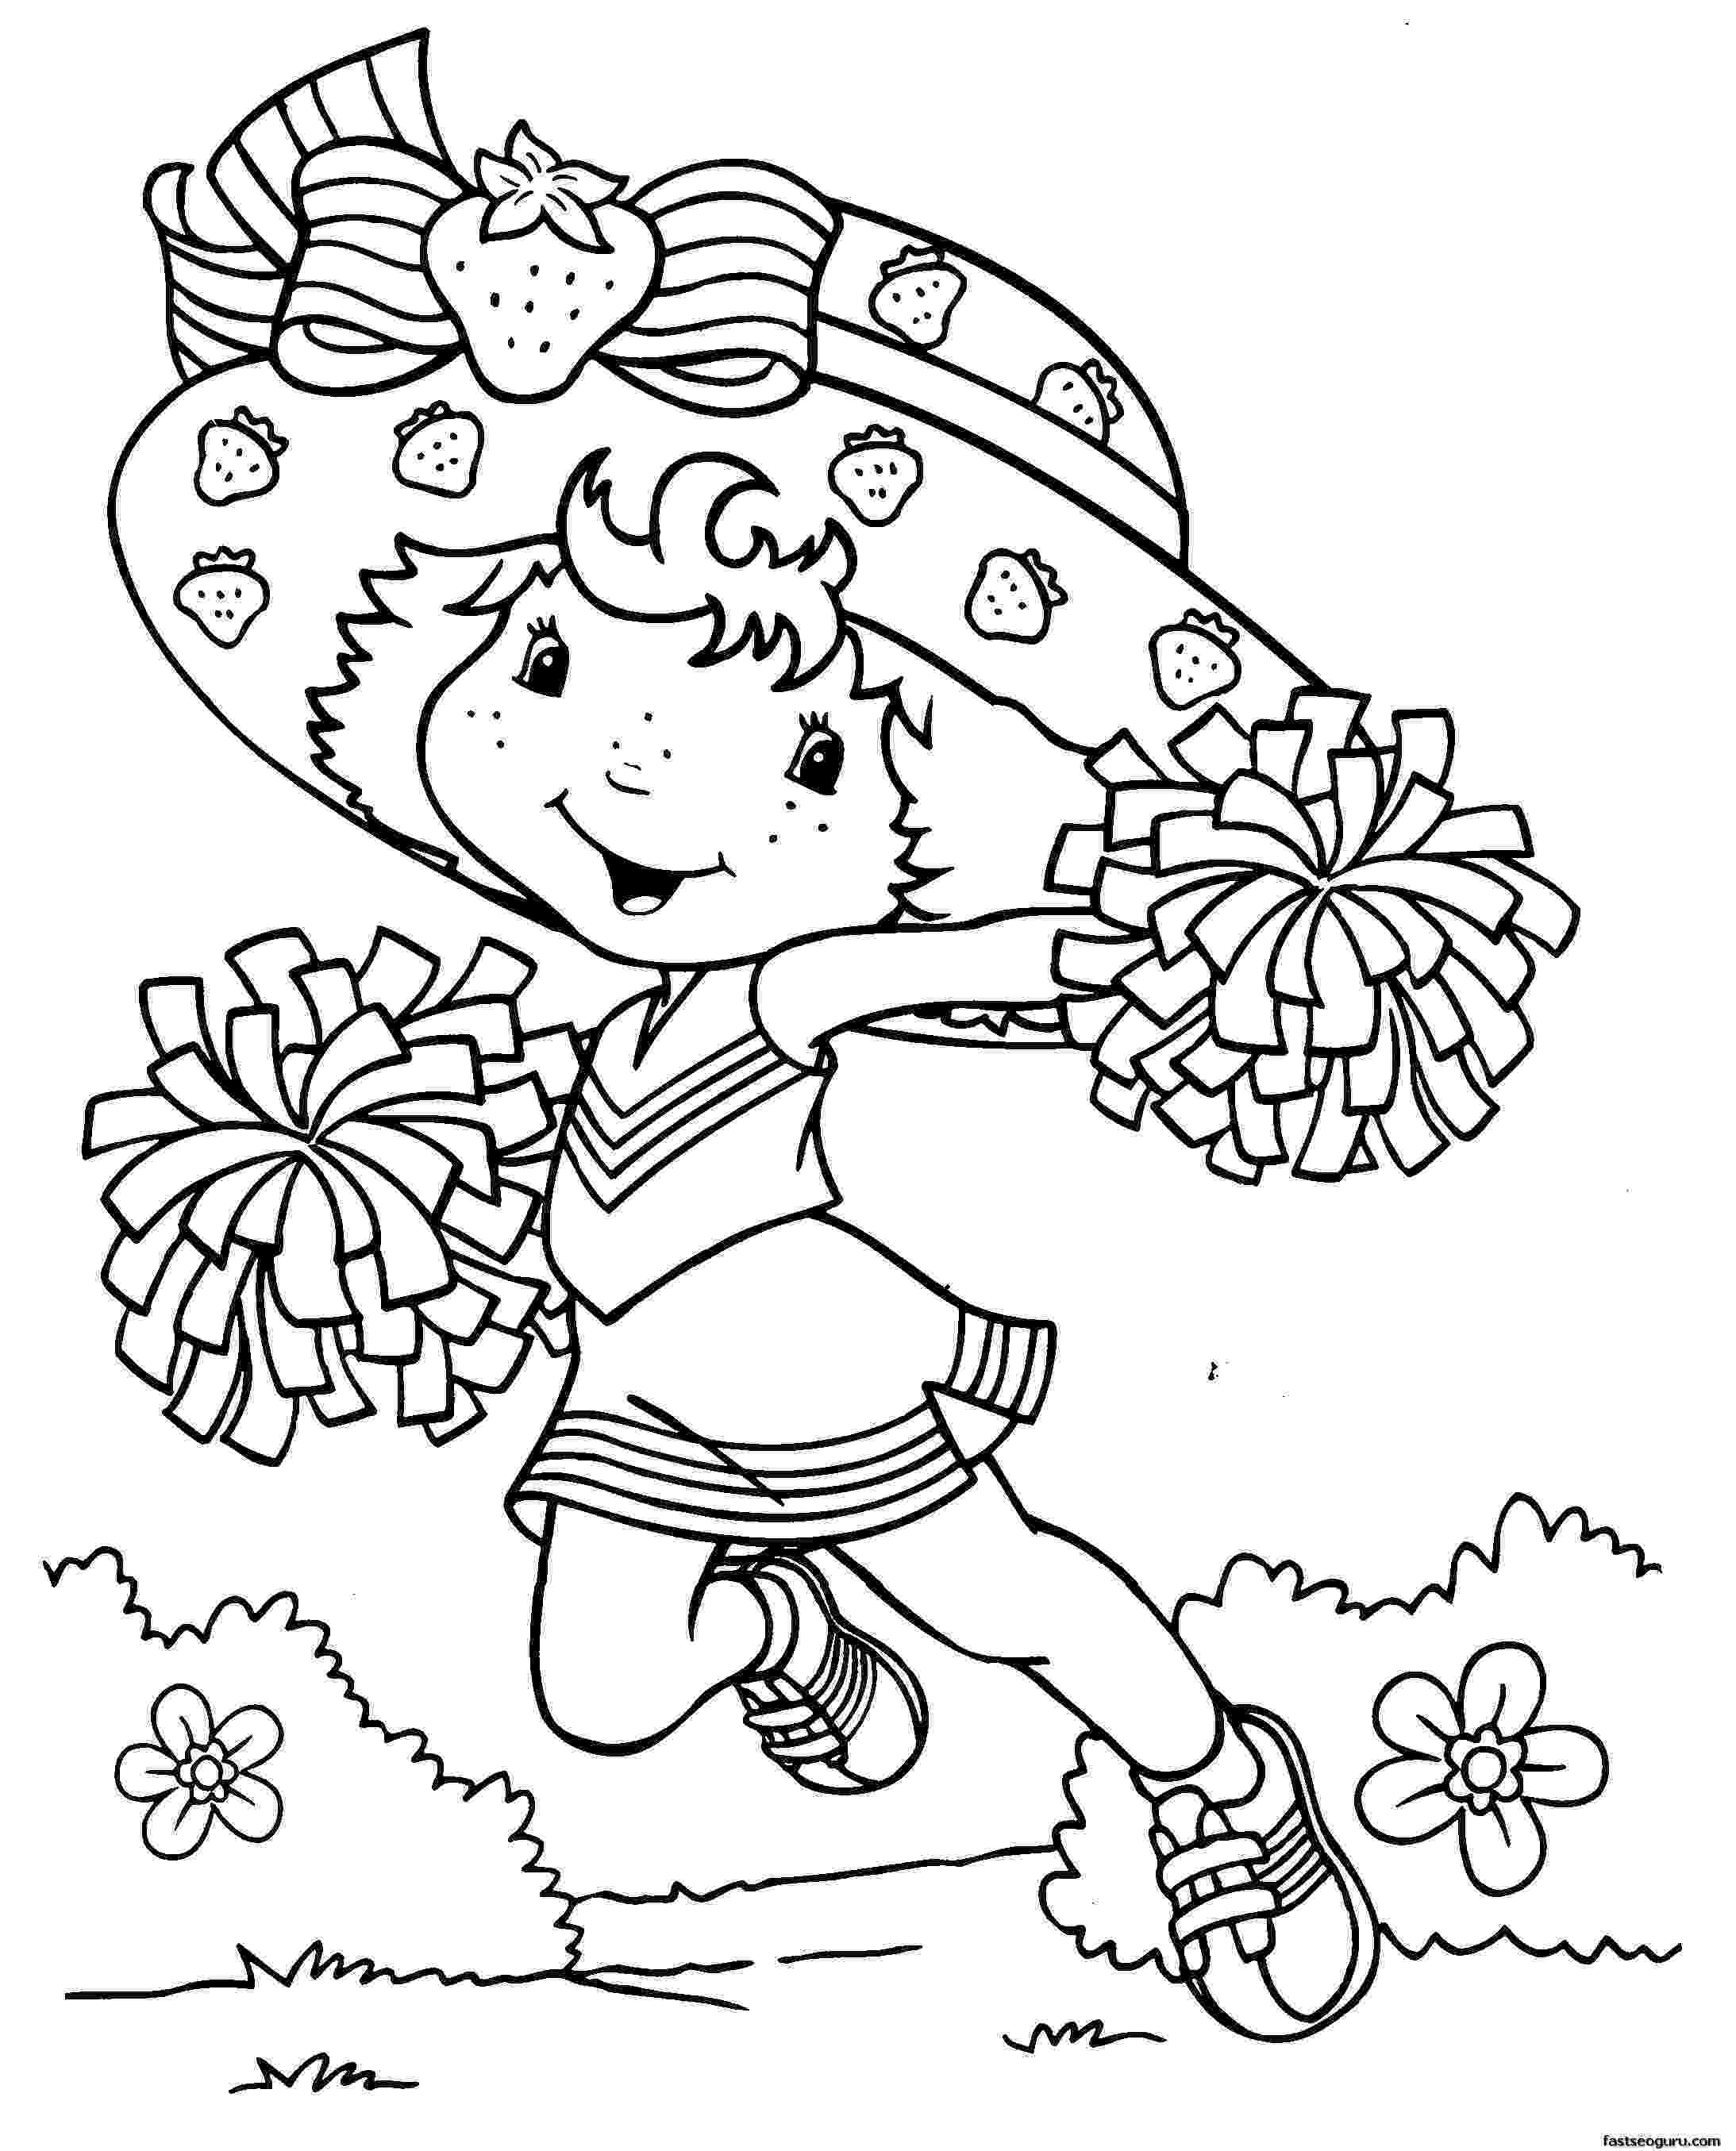 printable coloring sheets for girls coloring pages for girls best coloring pages for kids sheets girls coloring printable for